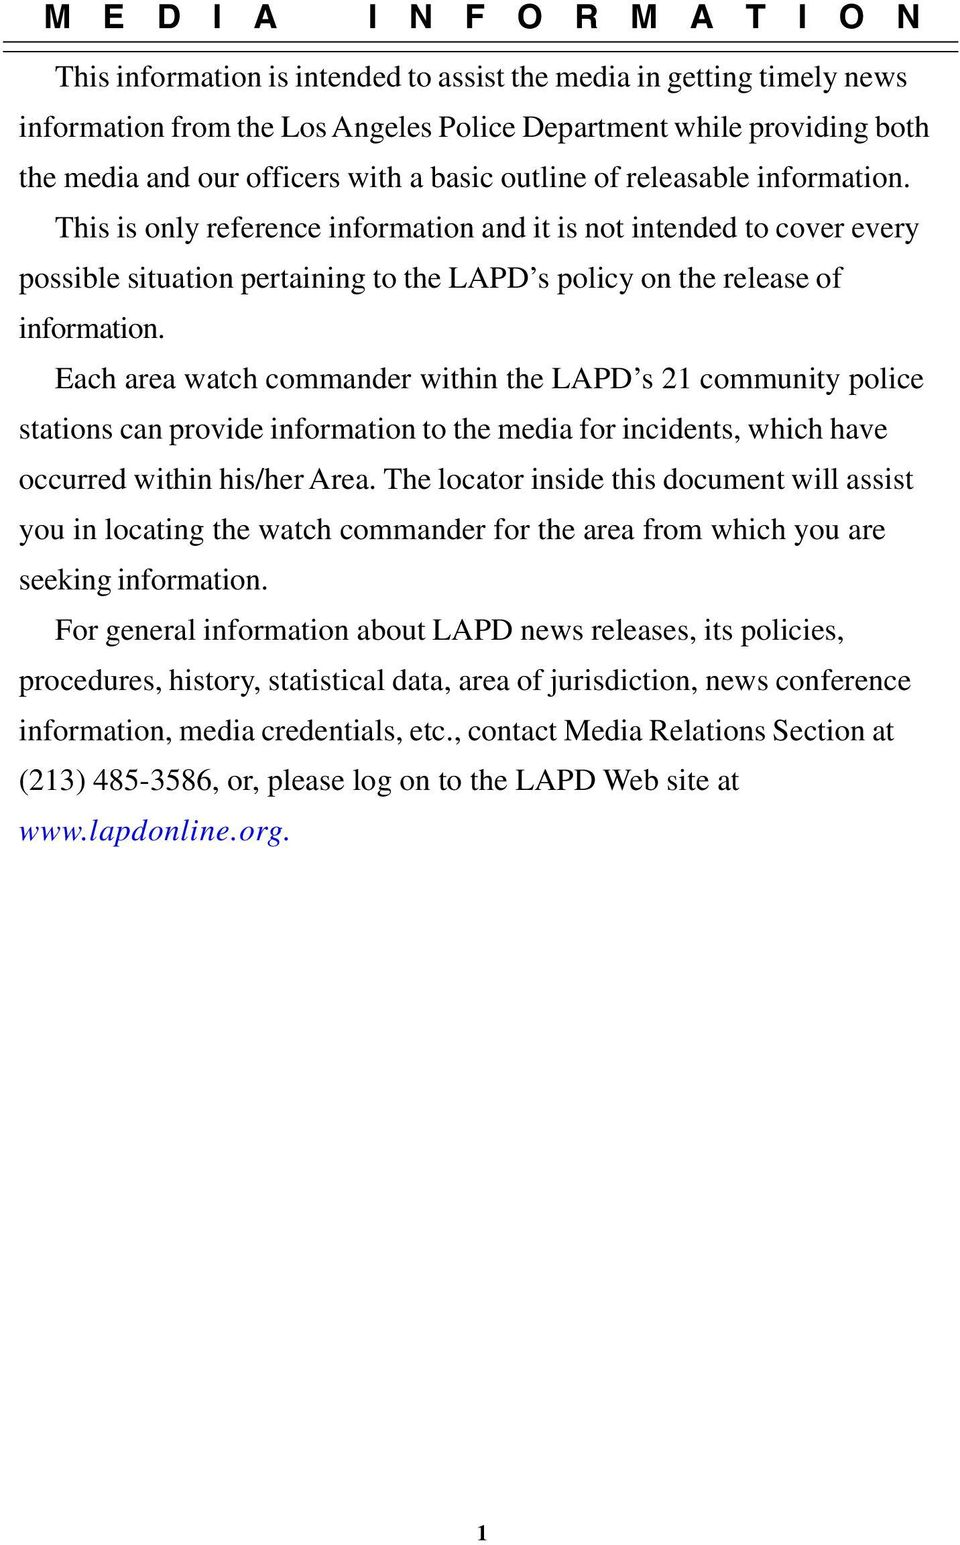 This is only reference information and it is not intended to cover every possible situation pertaining to the LAPD s policy on the release of information.